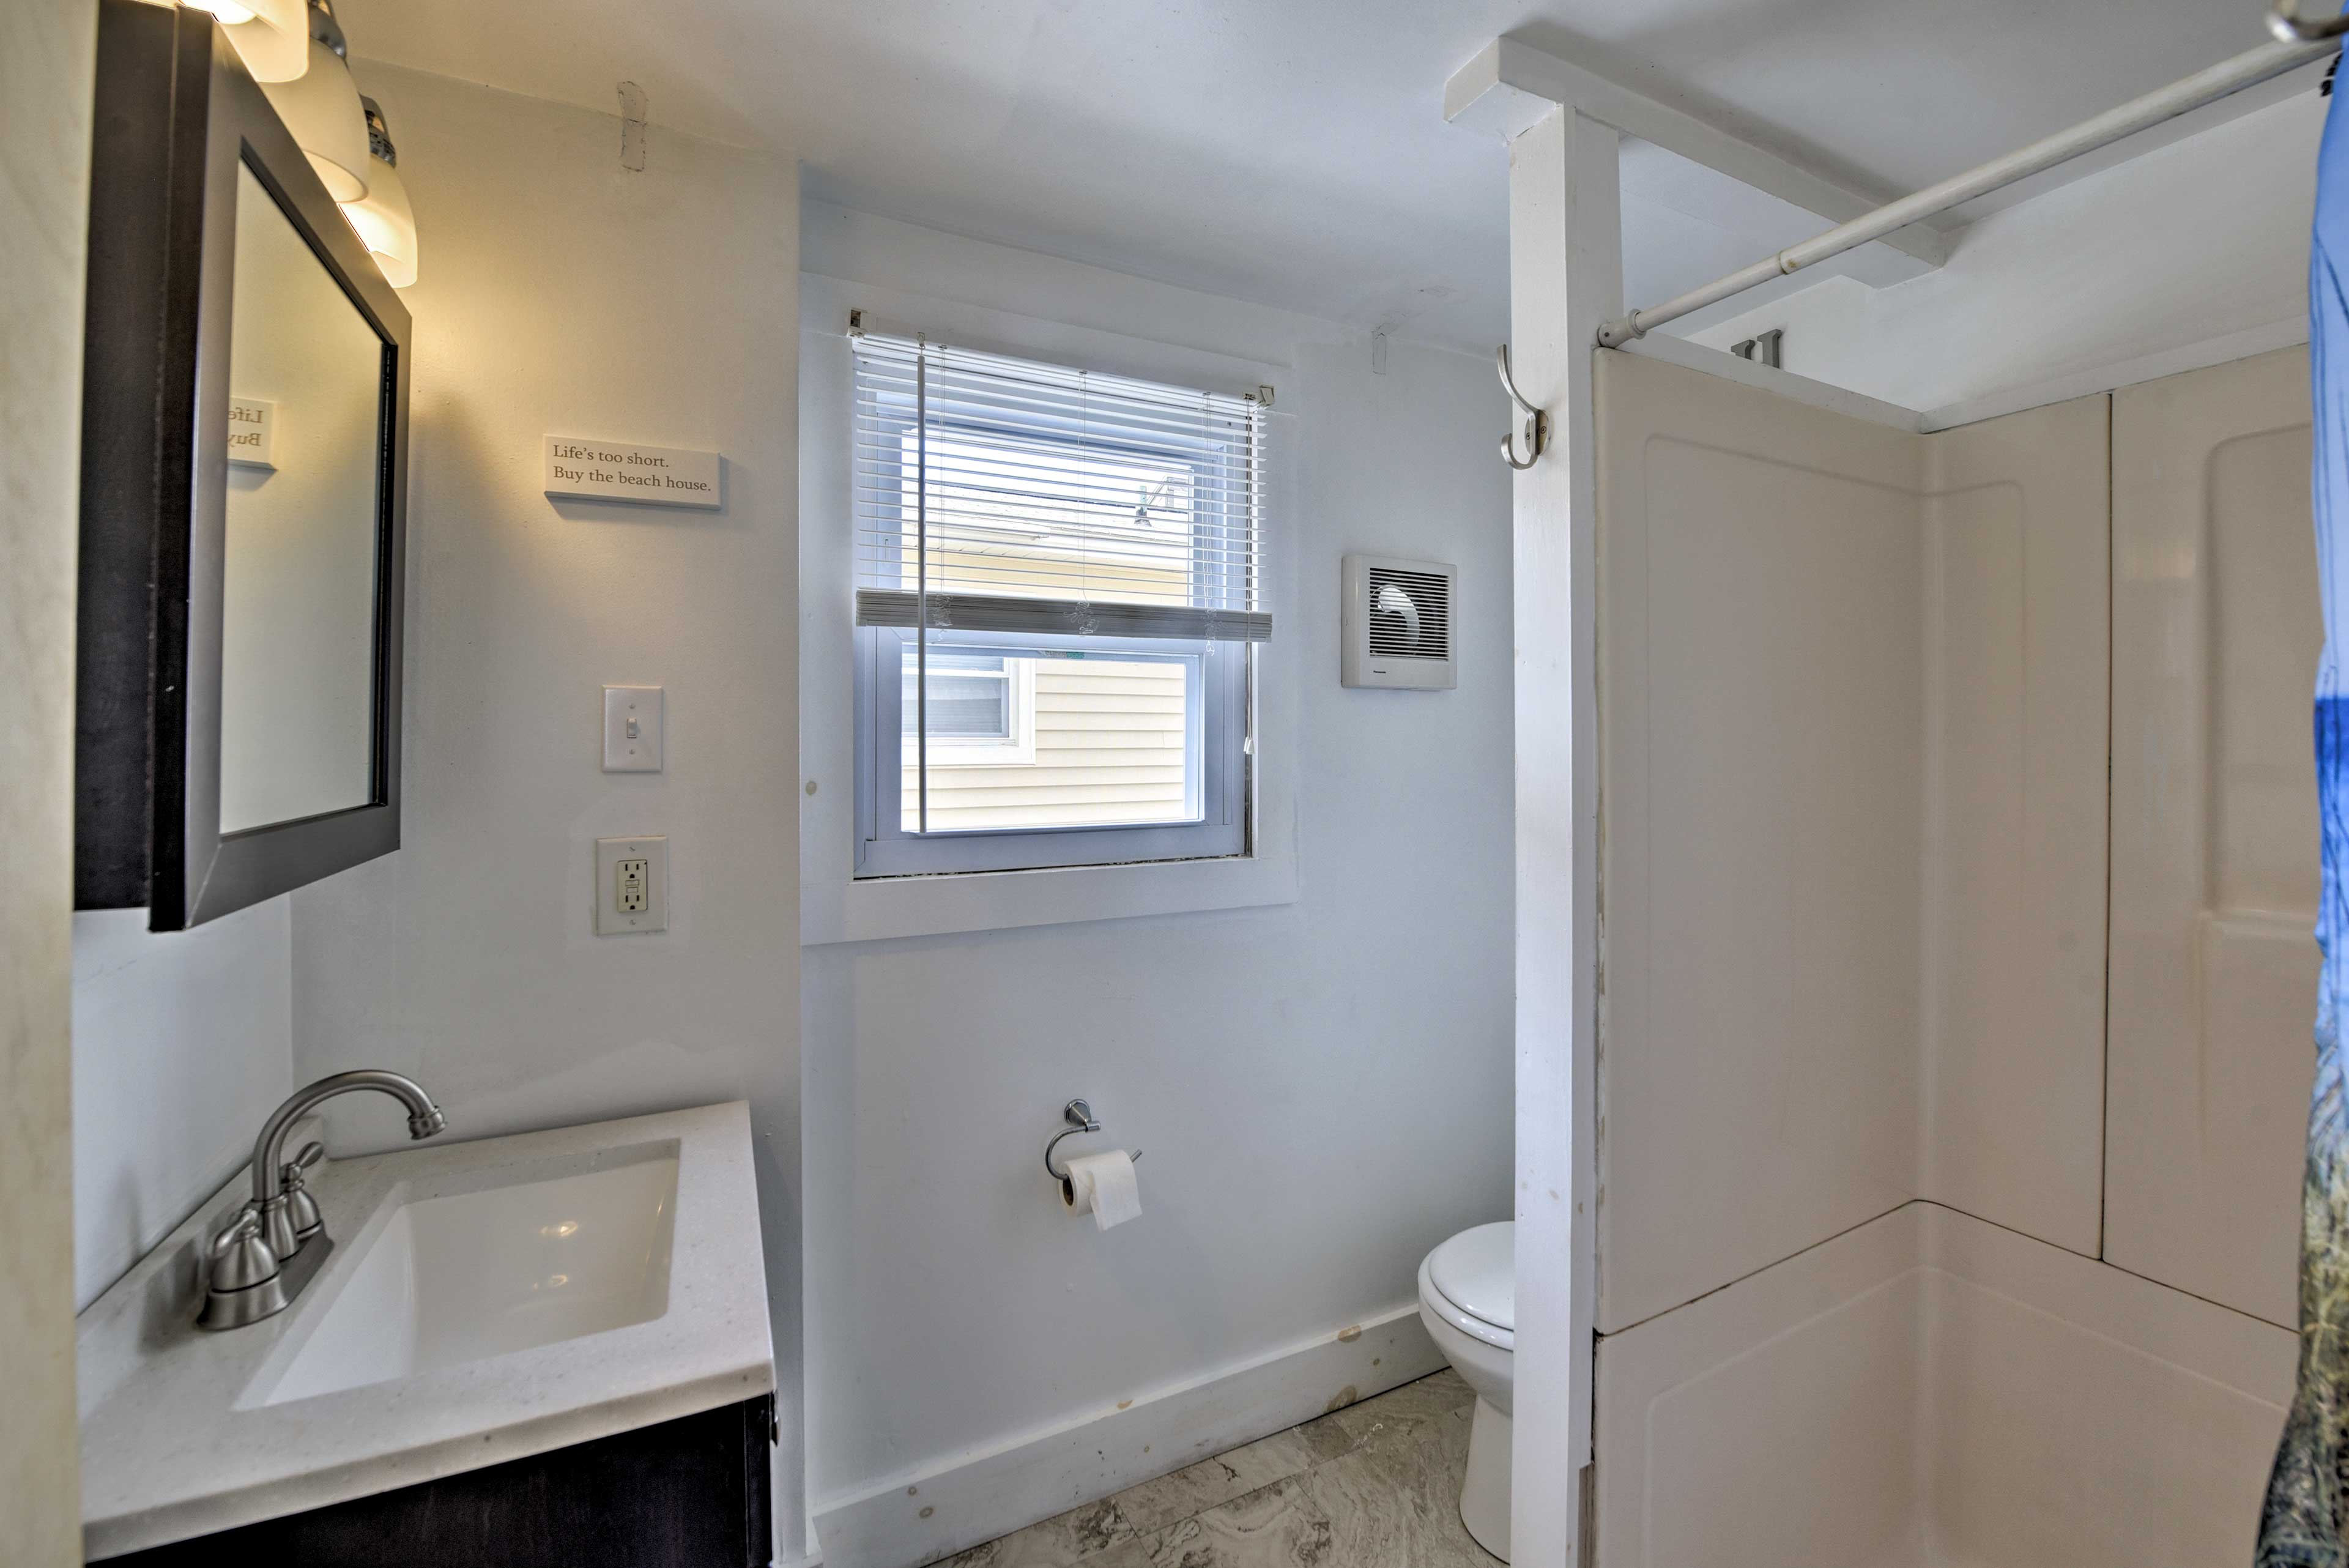 Take a rinse in the walk-in shower after a day at the beach!